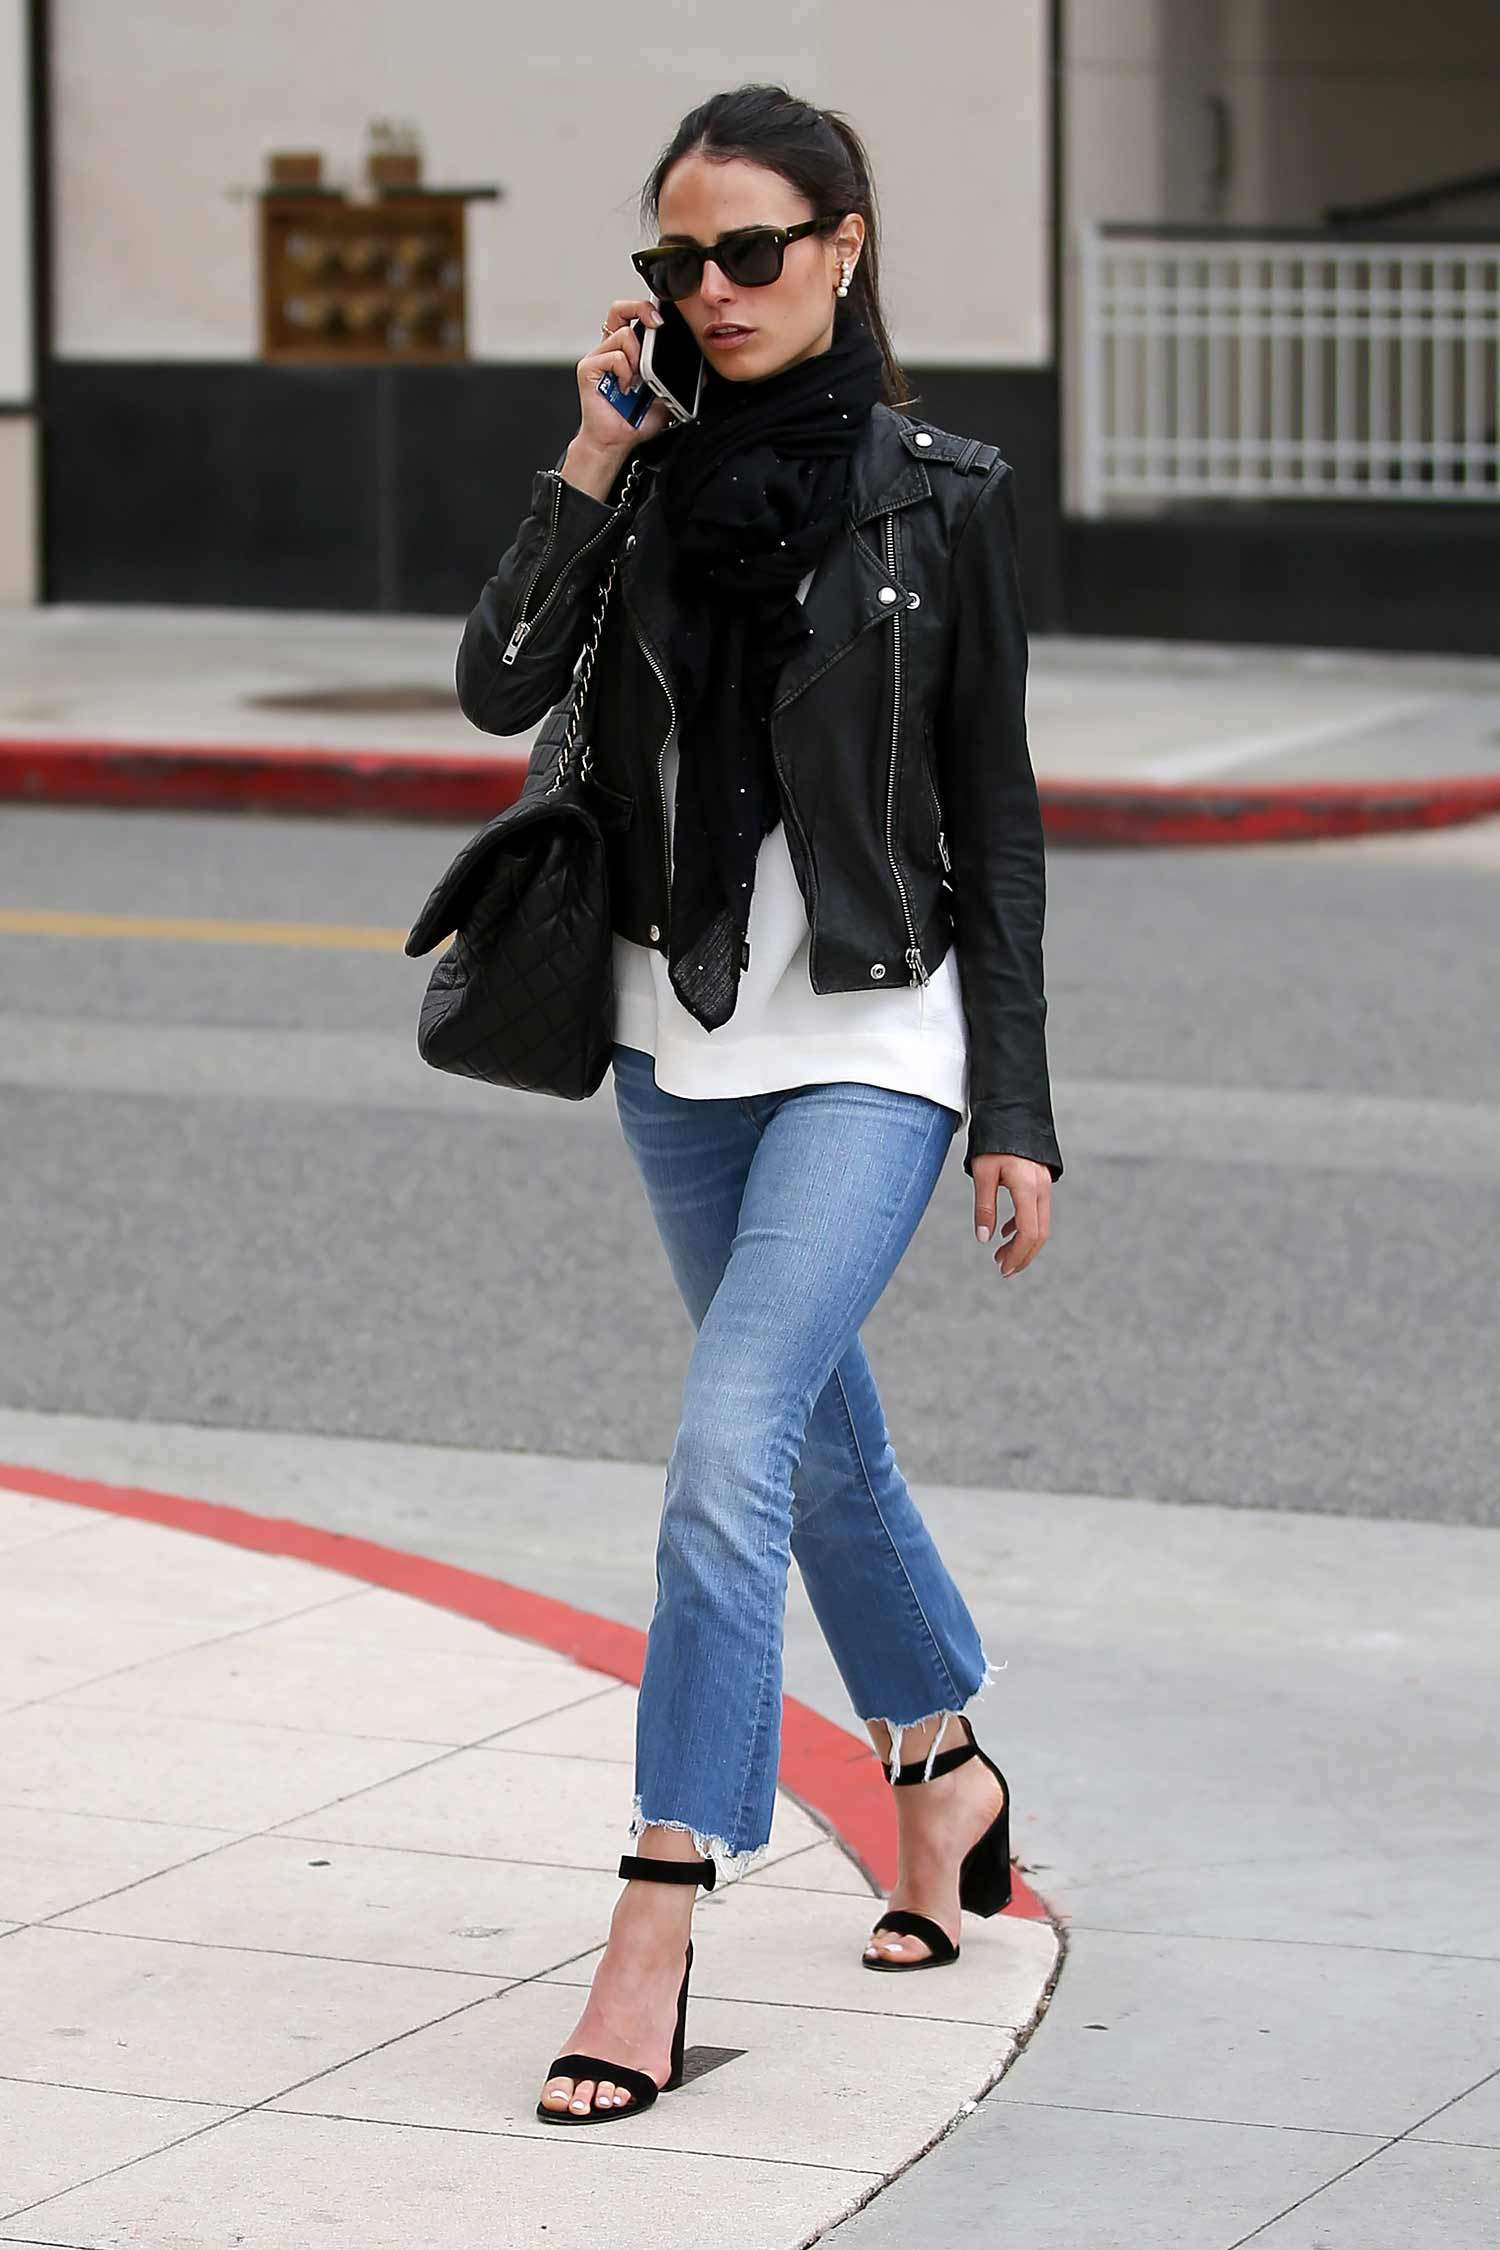 Jordana Brewster Wears Cropped Bootcut Jeans | The Jeans Blog